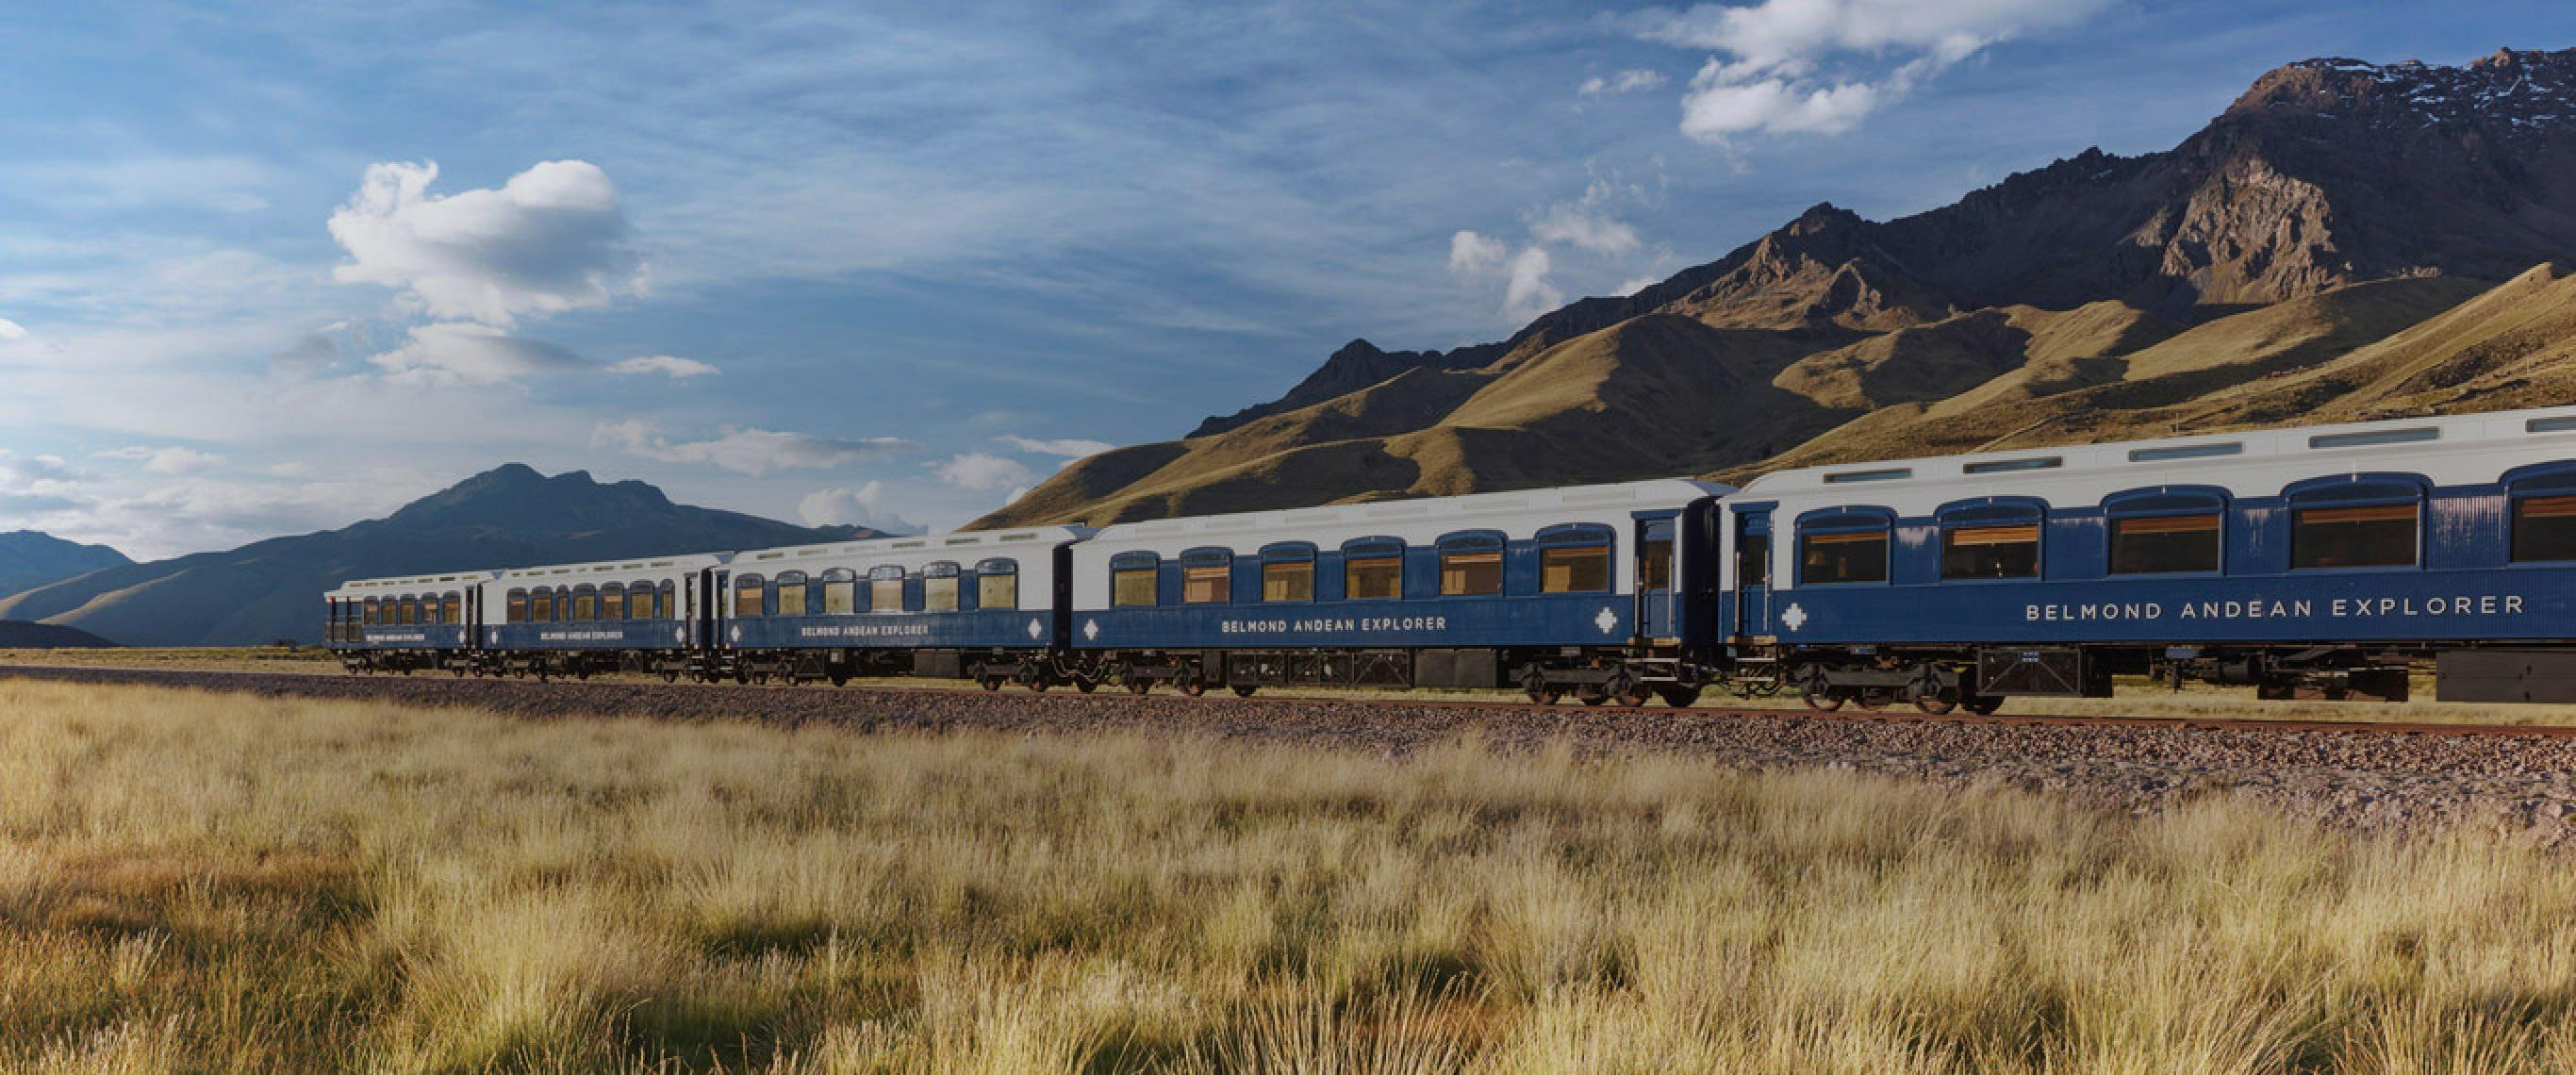 Belmond Andean Explorer - Train Hotel 1Night - Cusco to Puno